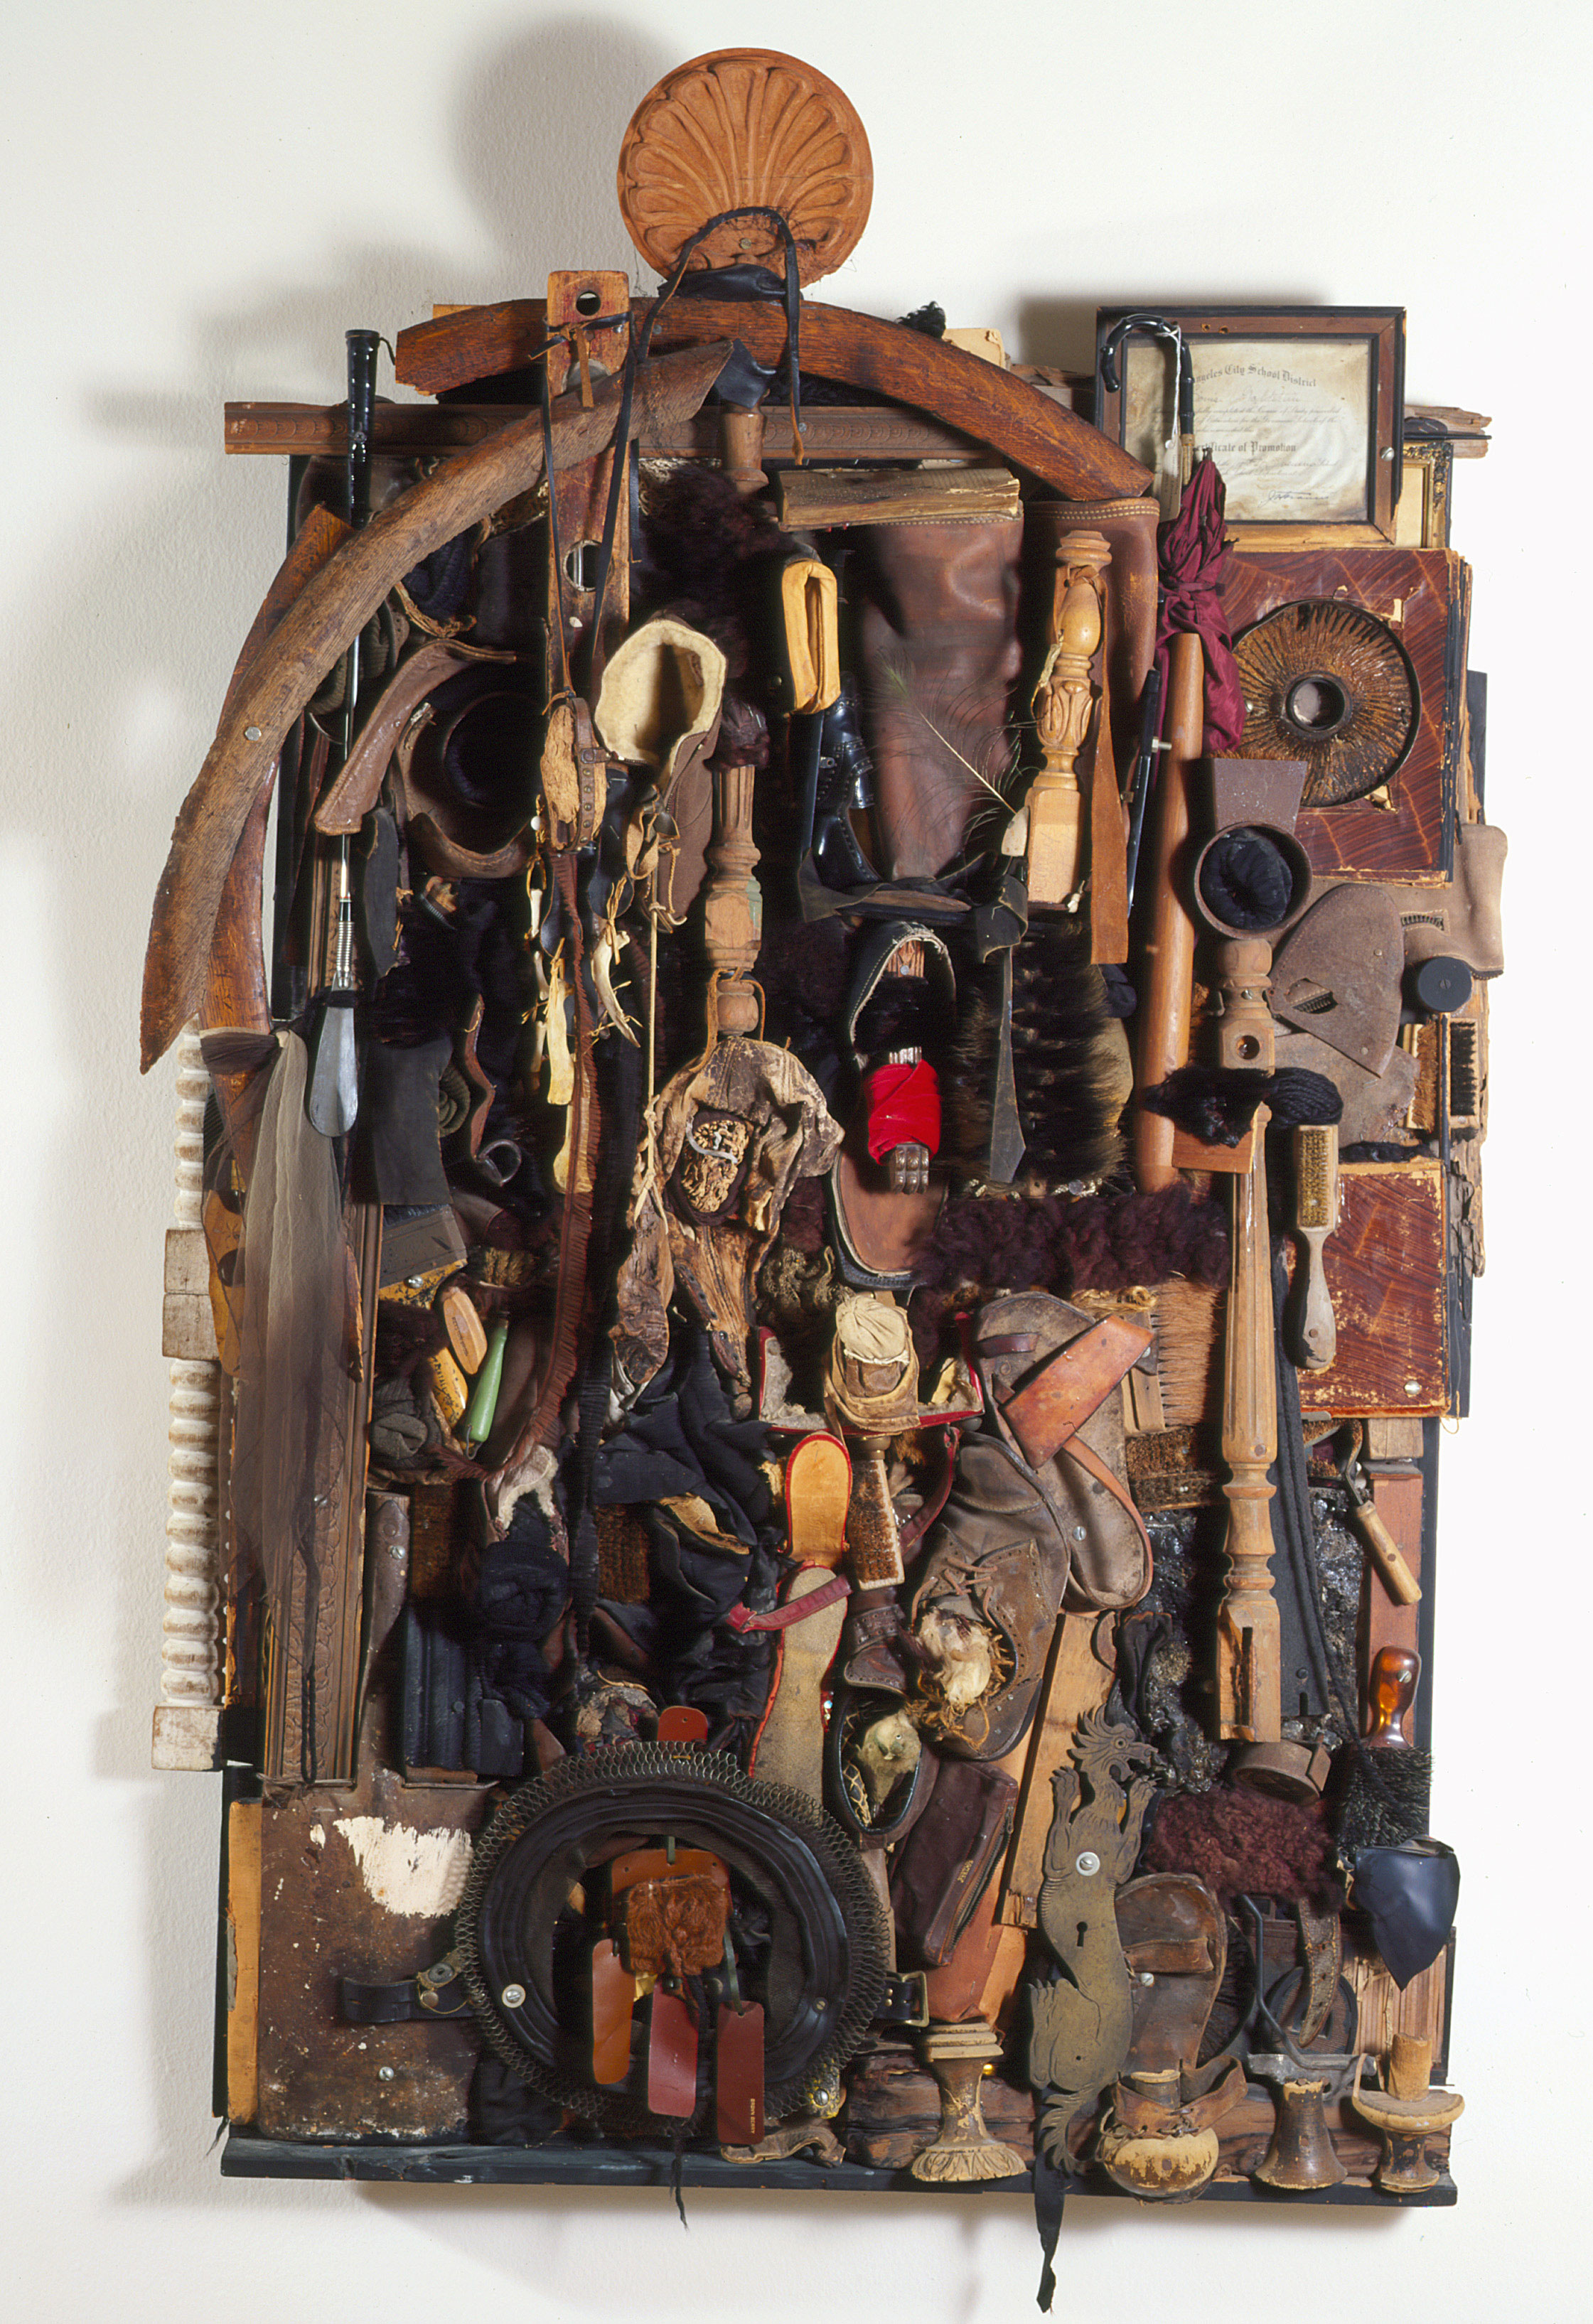 Untitled (Assemblage), by Noah Purifoy, 1967